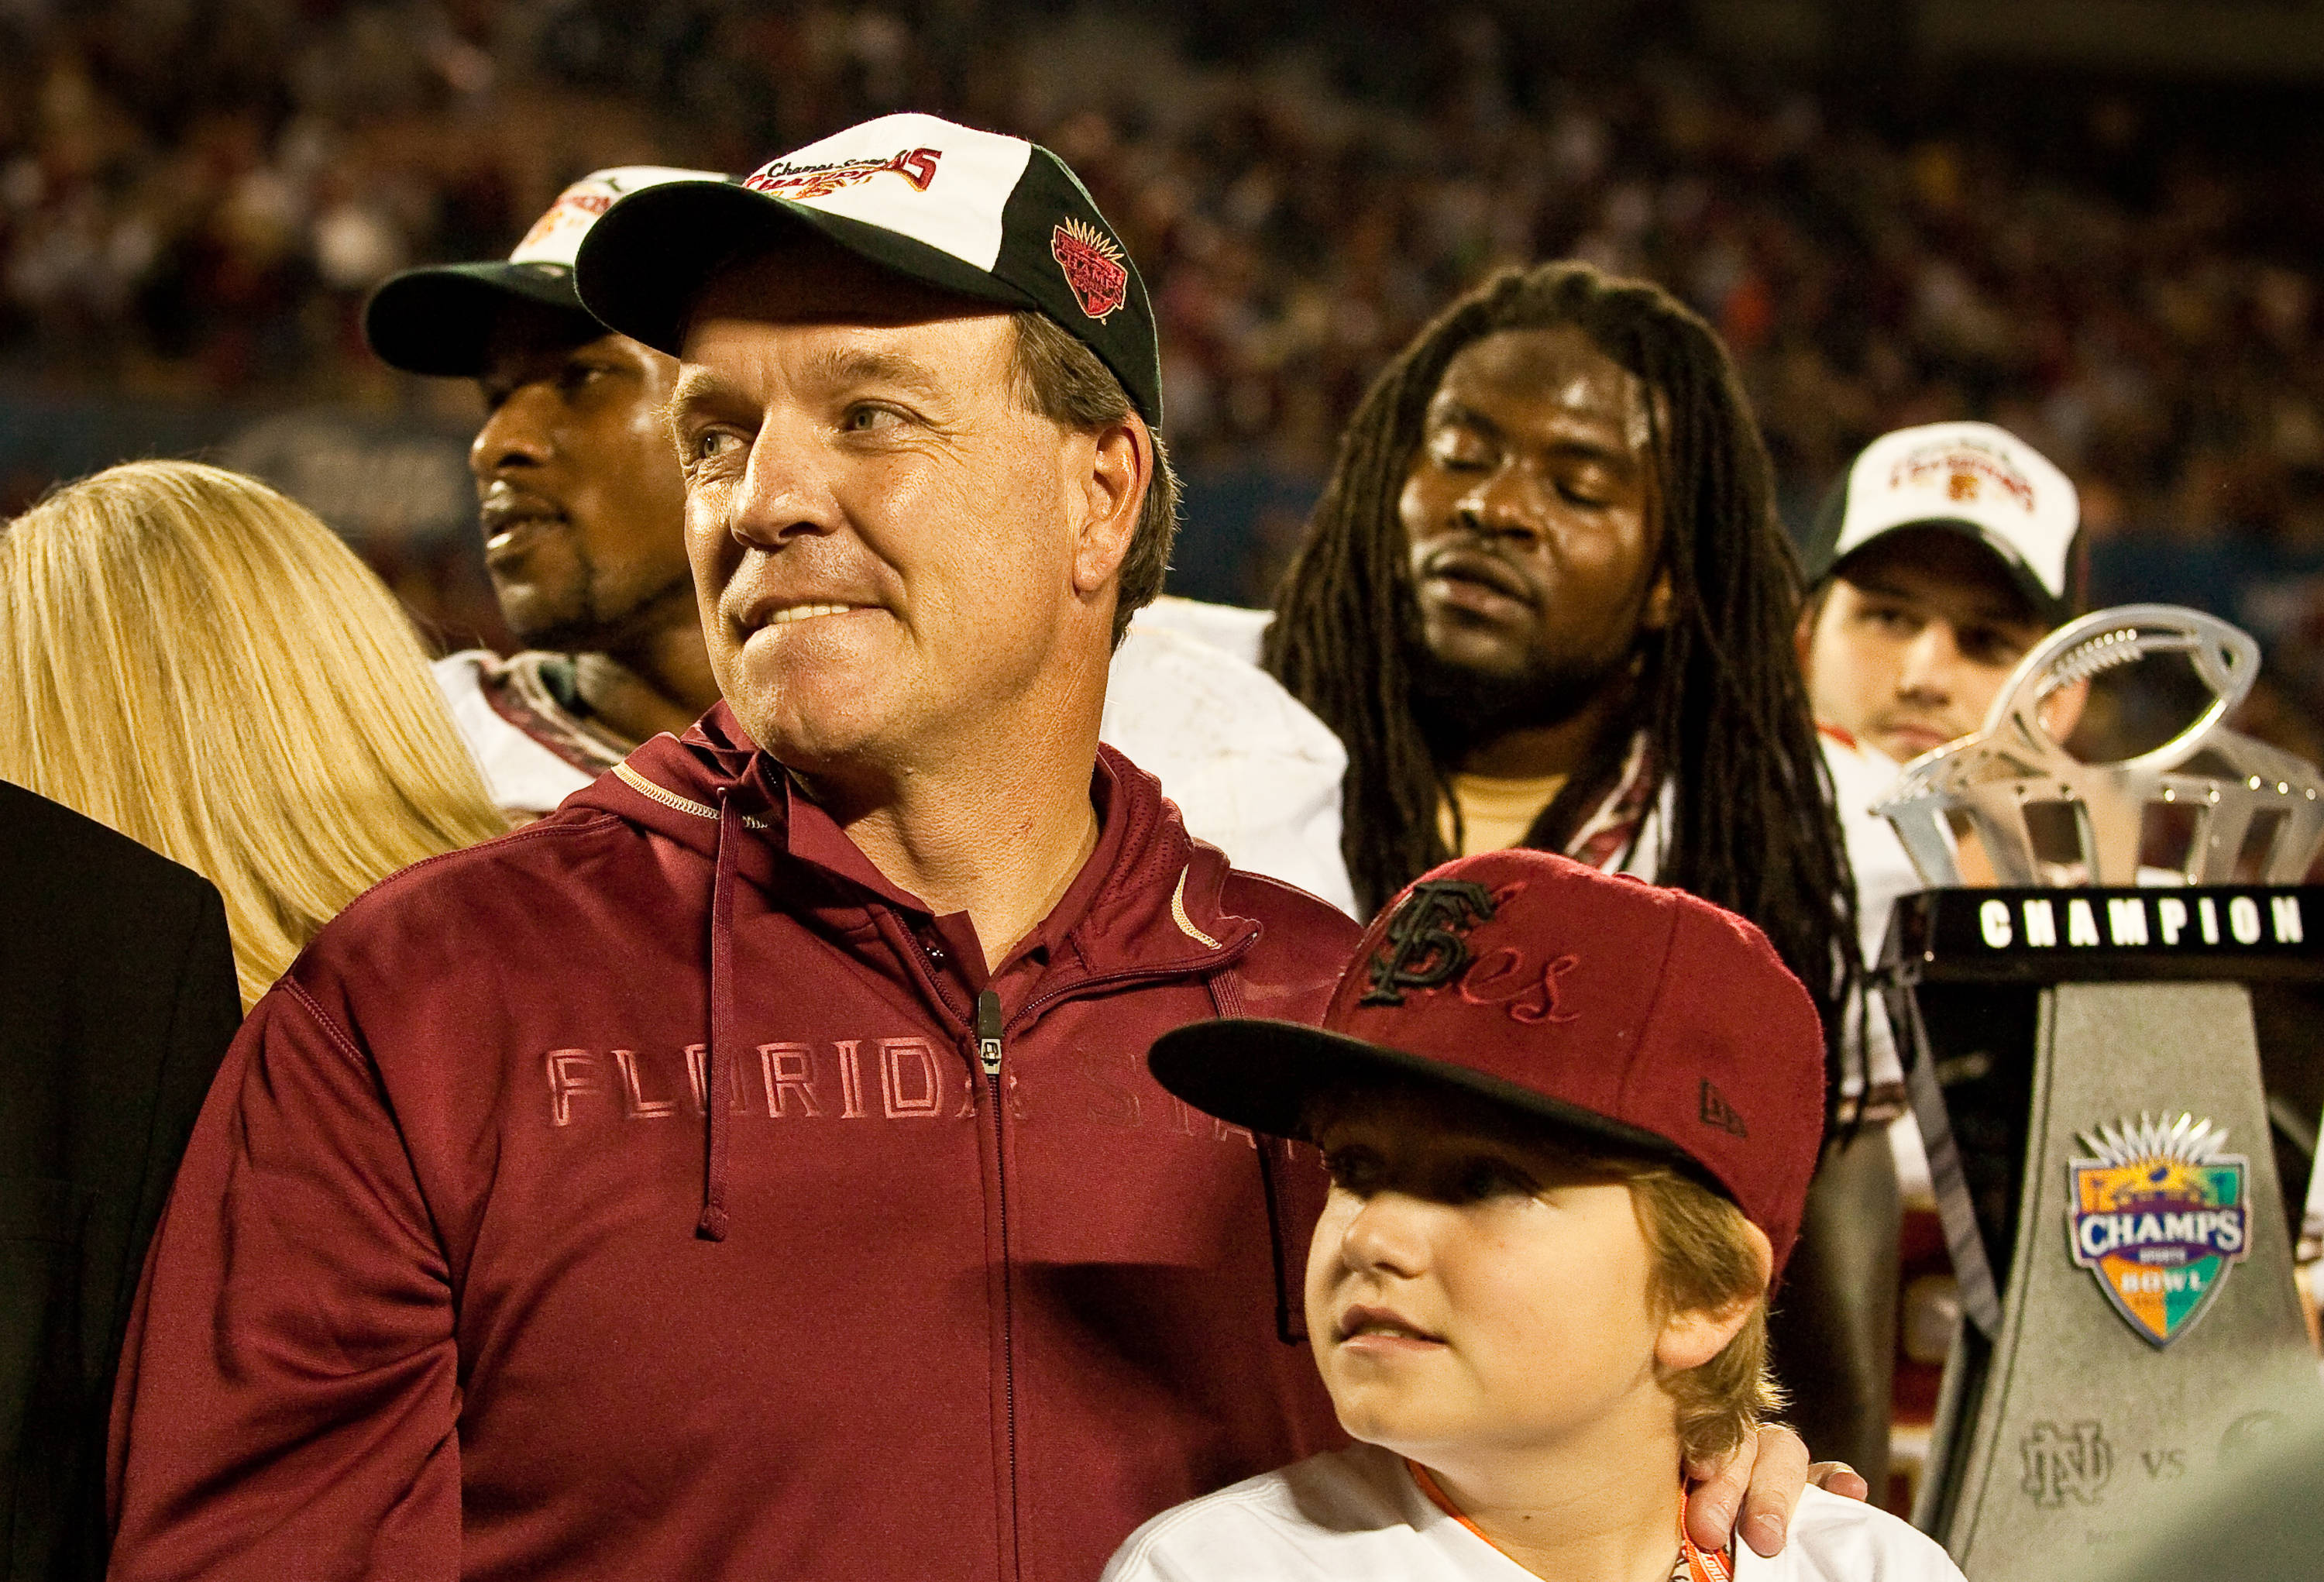 Jimbo Fisher celebrates the Champs Sports victory with his son Trey.